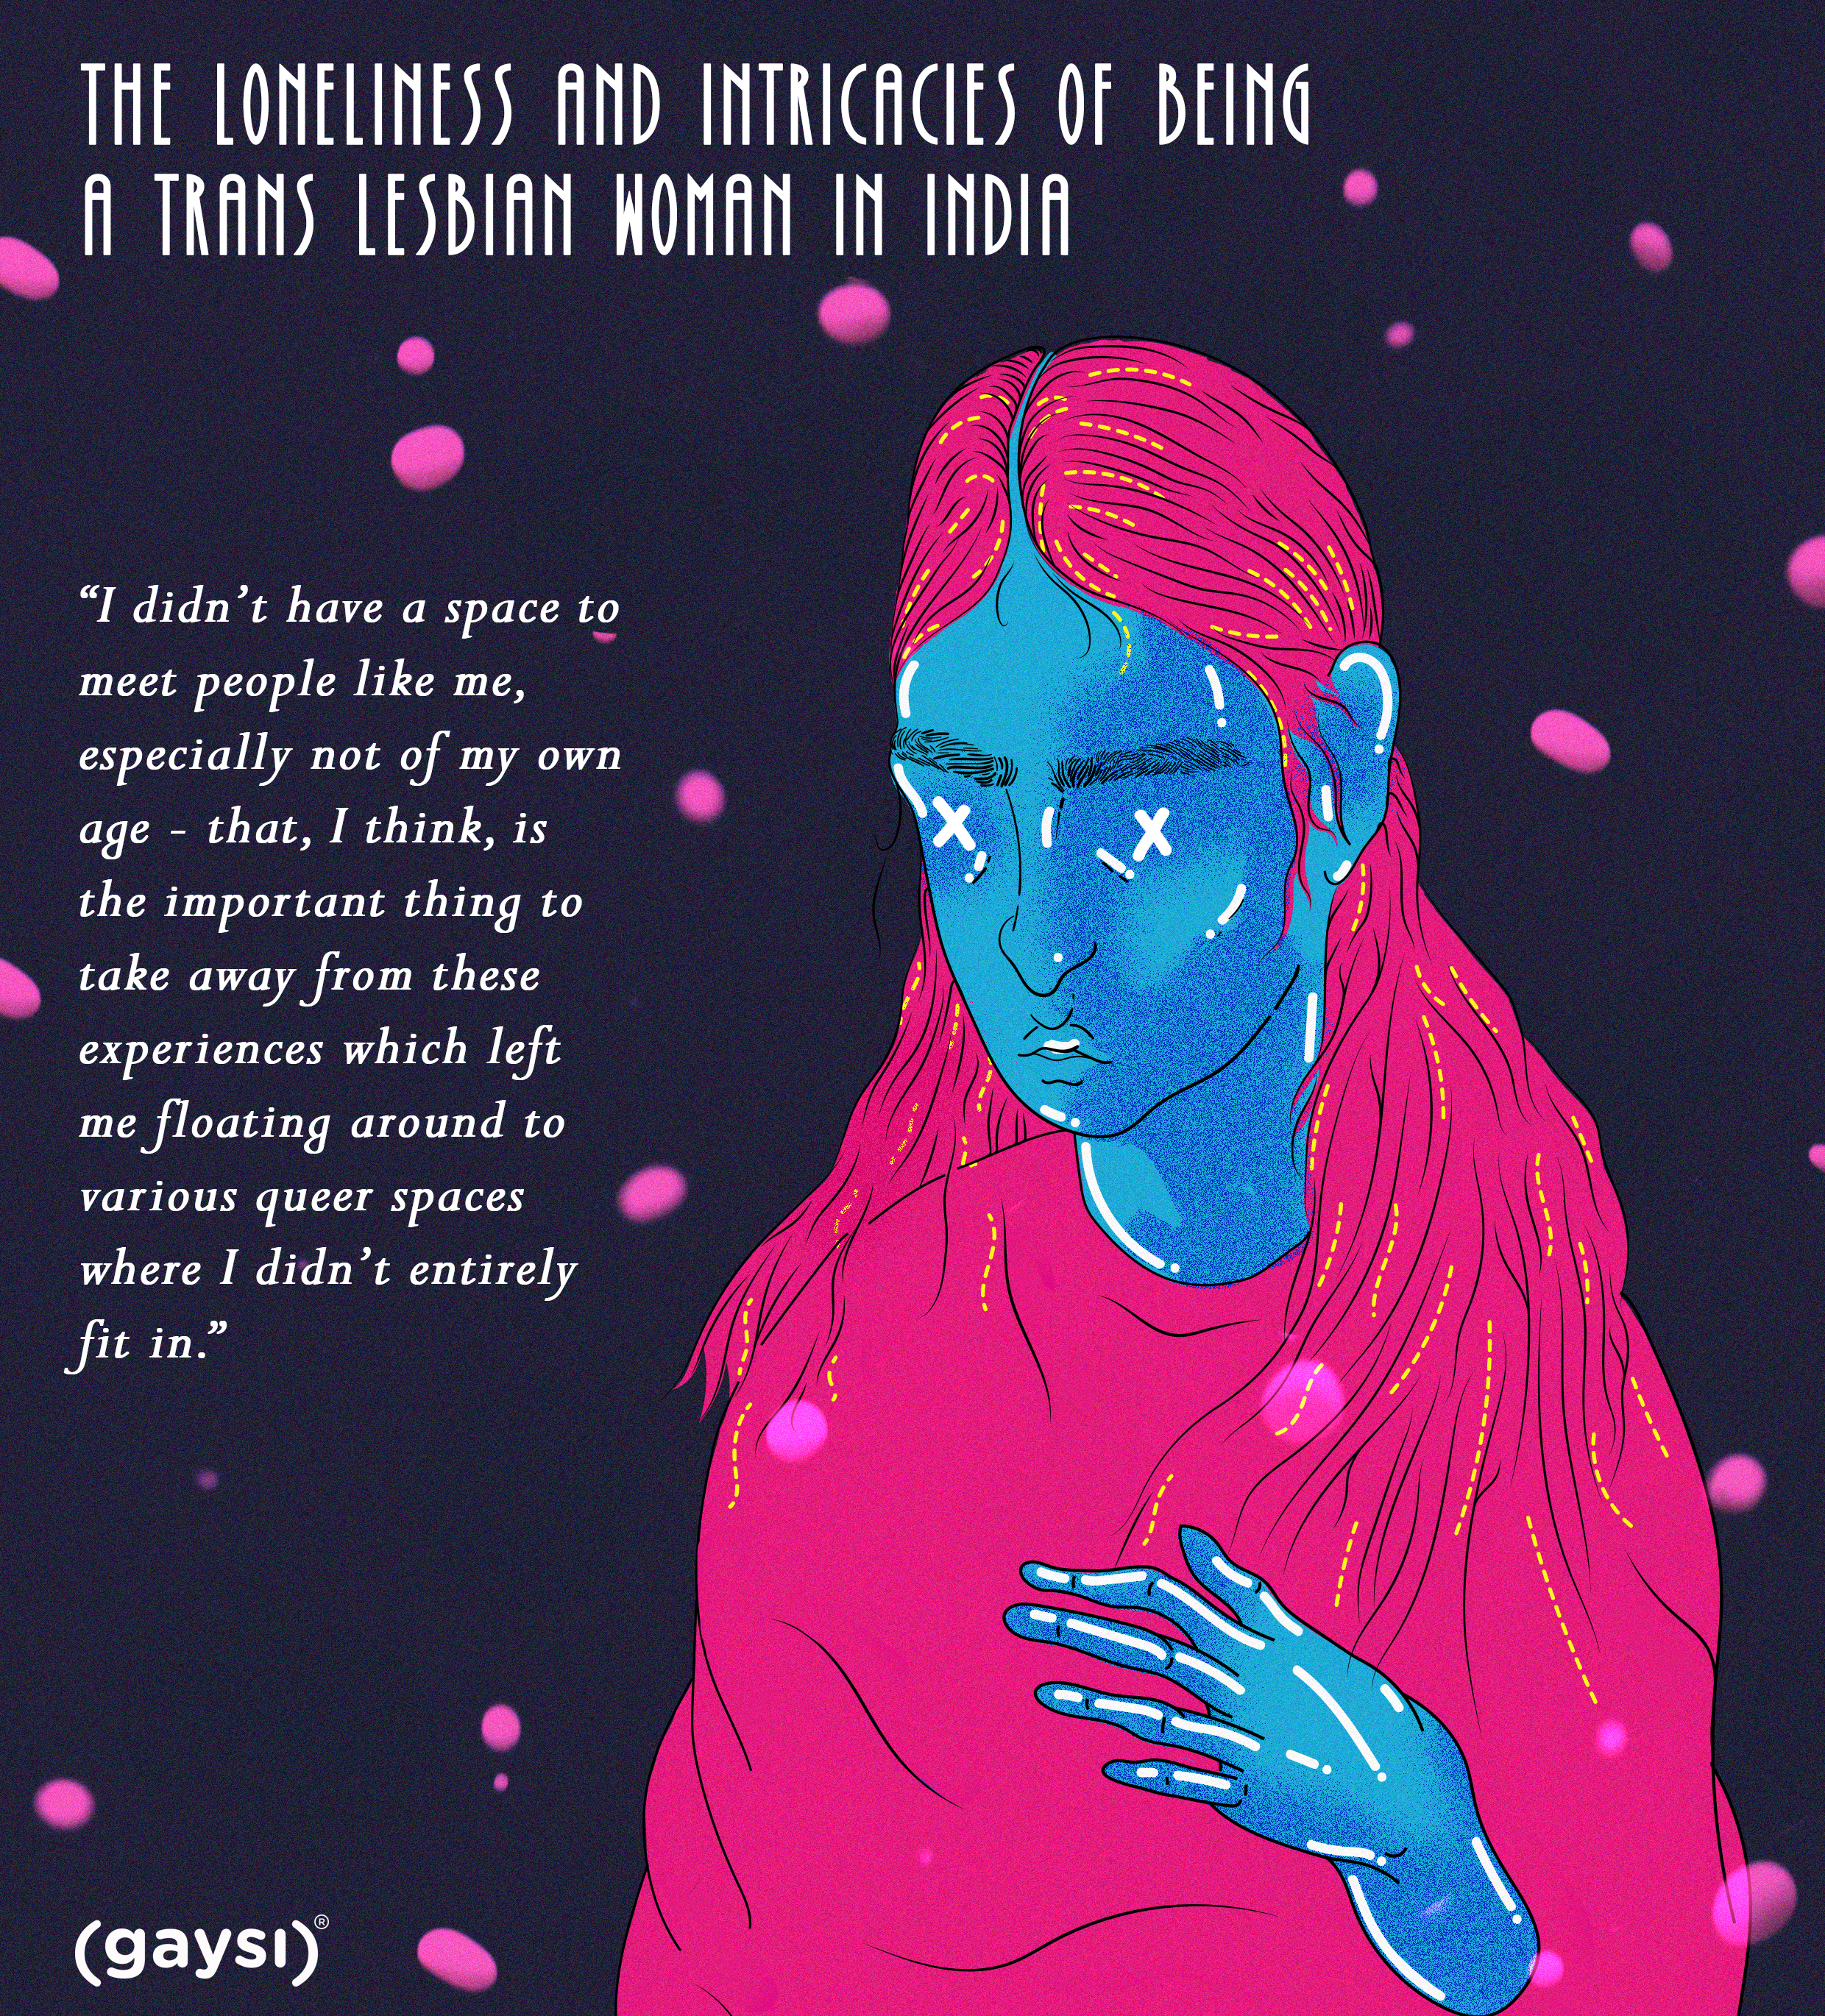 The Loneliness And Intricacies Of Being A Trans Lesbian Woman In India: Community And Life